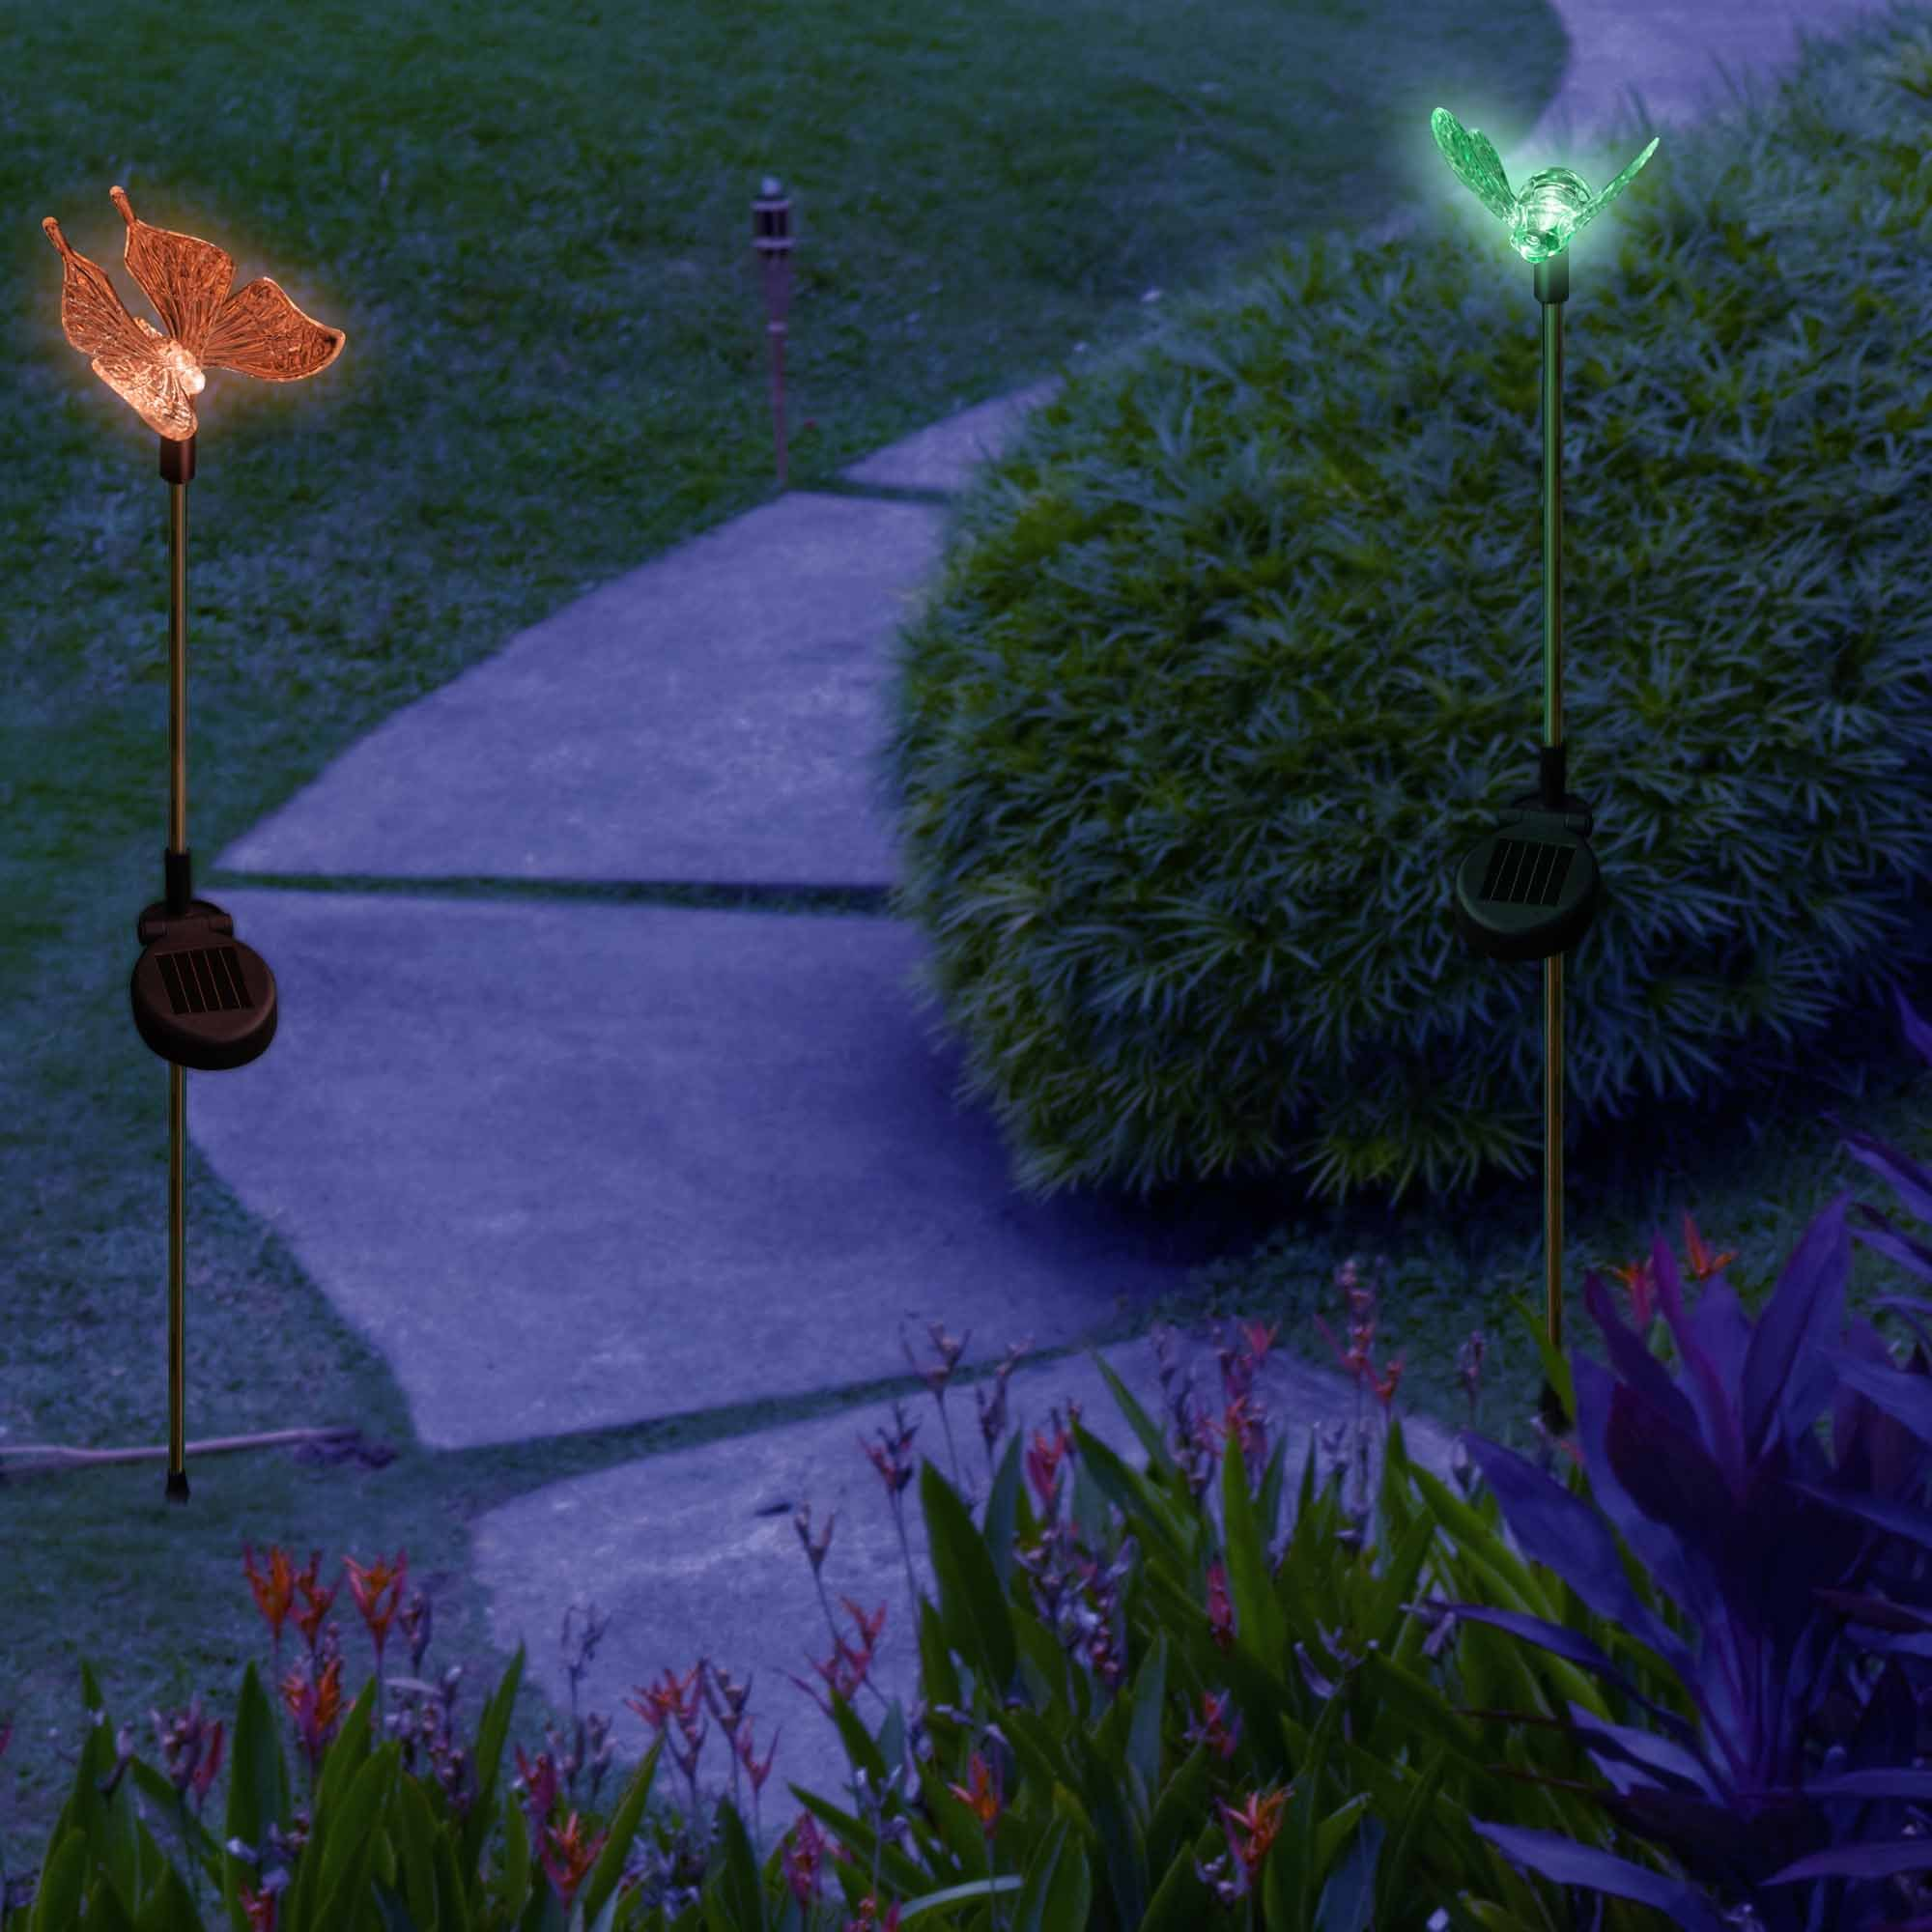 SolarDuke Solar Garden Outdoor Stake Lights Butterfly and Bumble Bee Garden Lighting Path Decoration Color Changing Patio Lawn Backyard Decor by SolarDuke (Image #6)